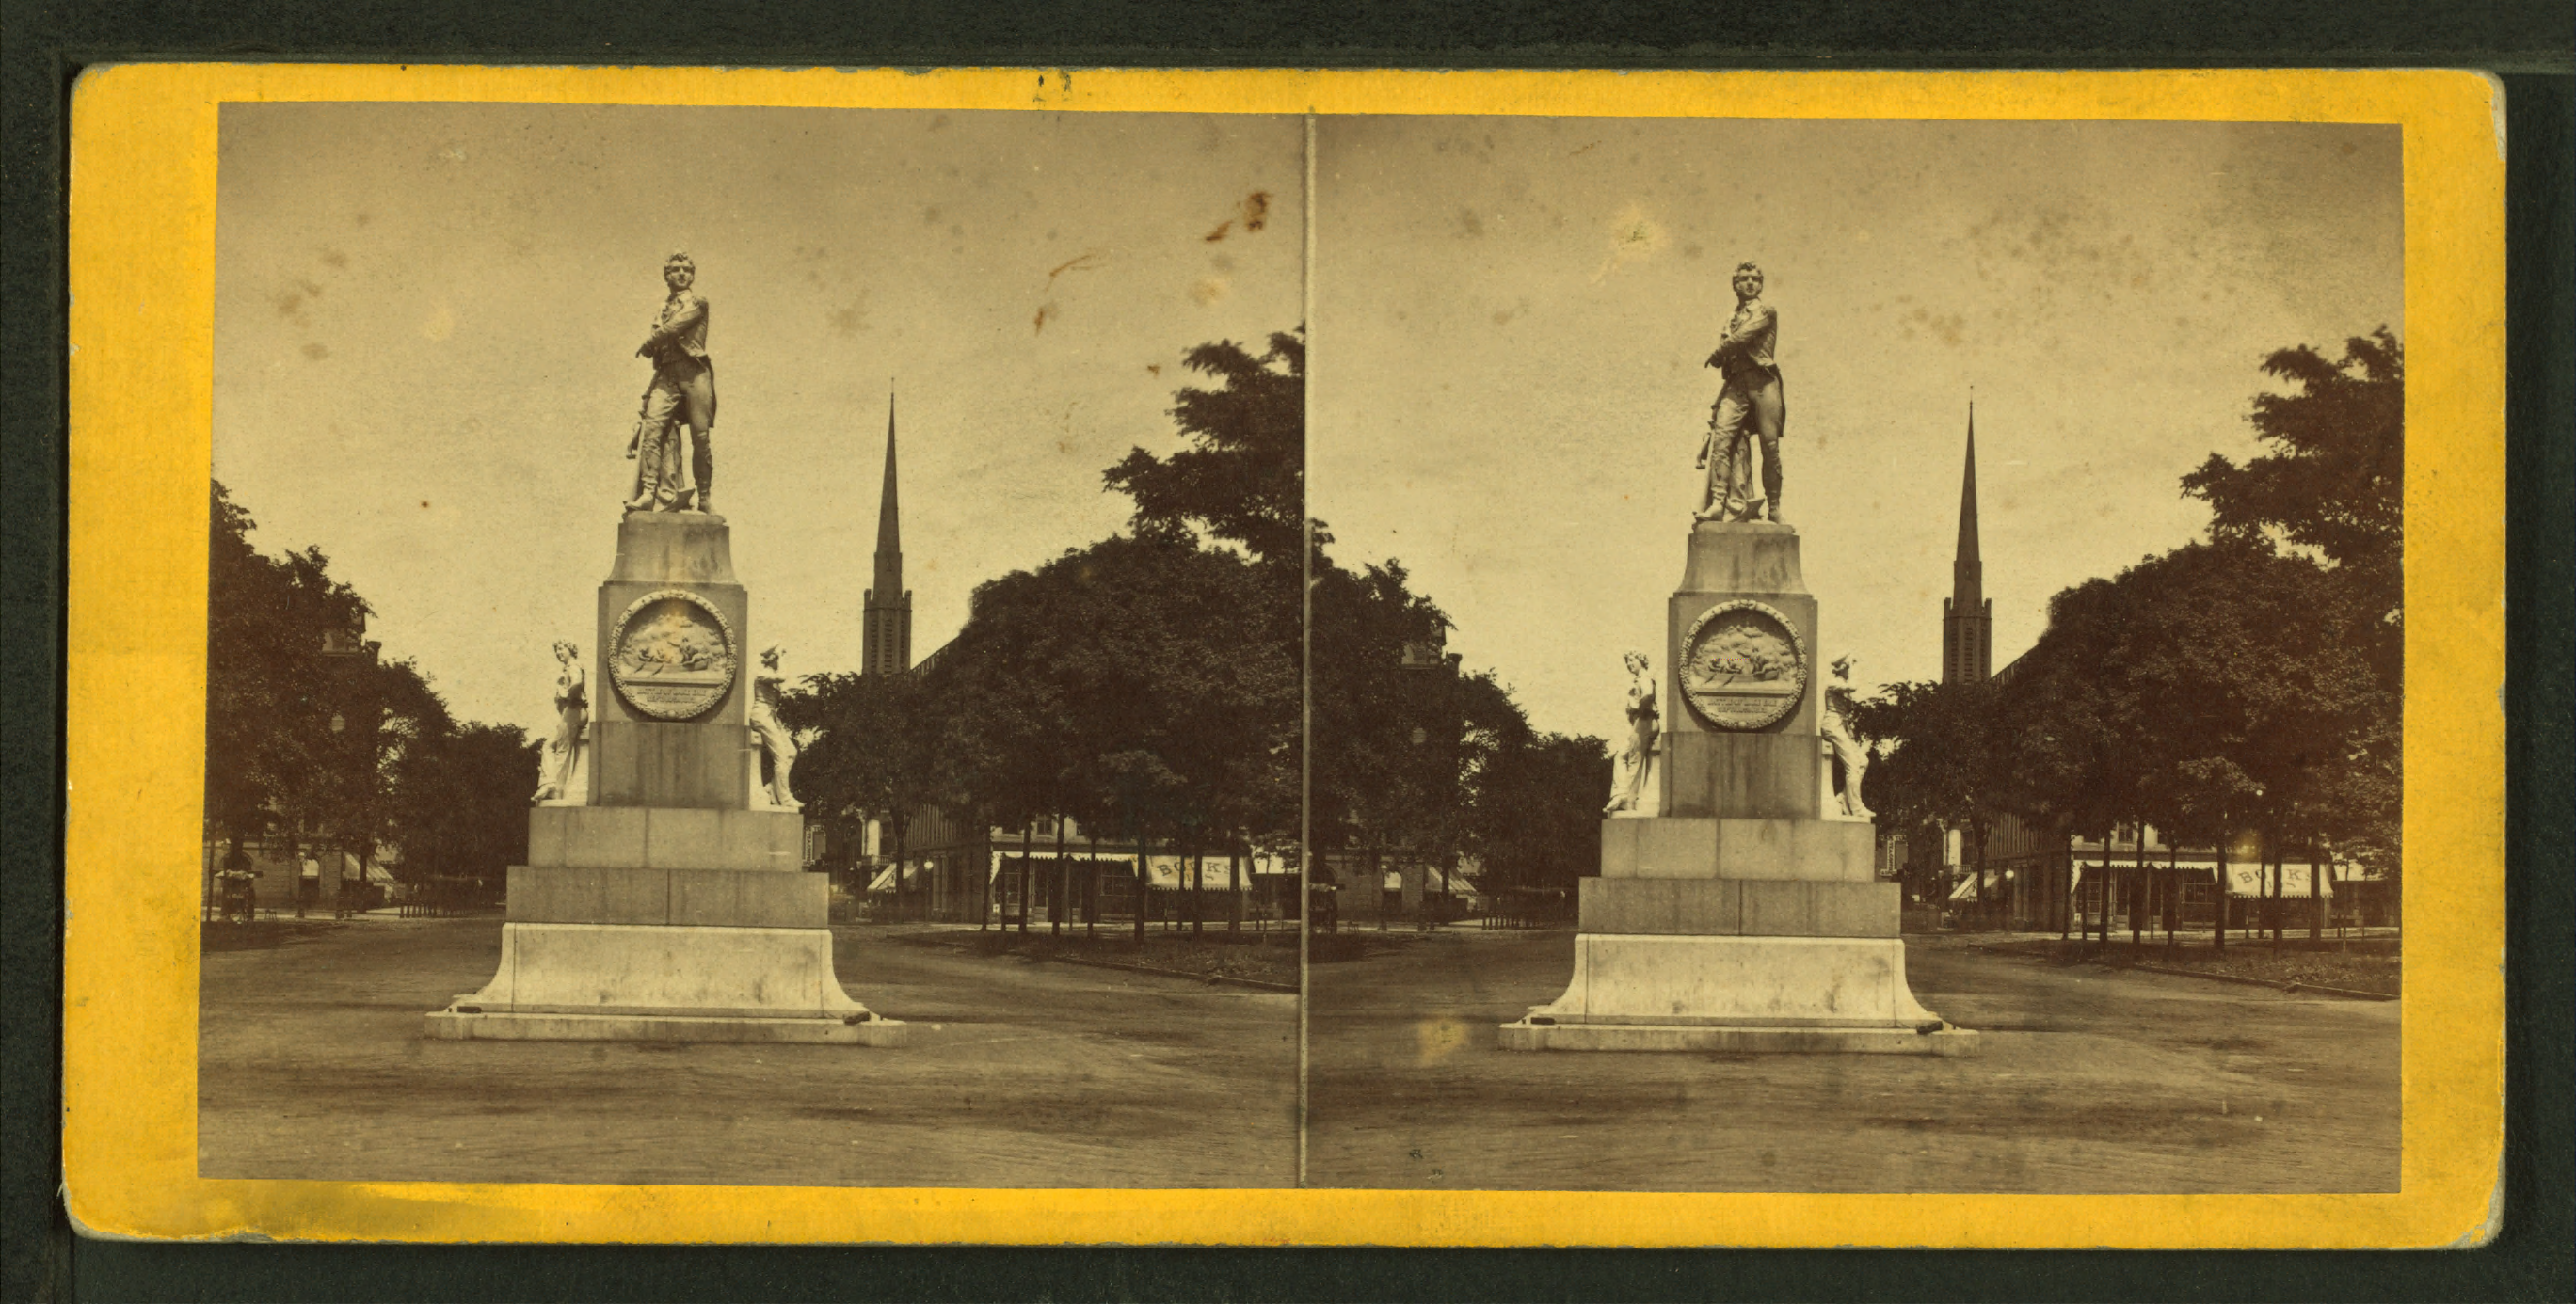 commodore perry's monument, by e. & h.t. anthony (firm).png